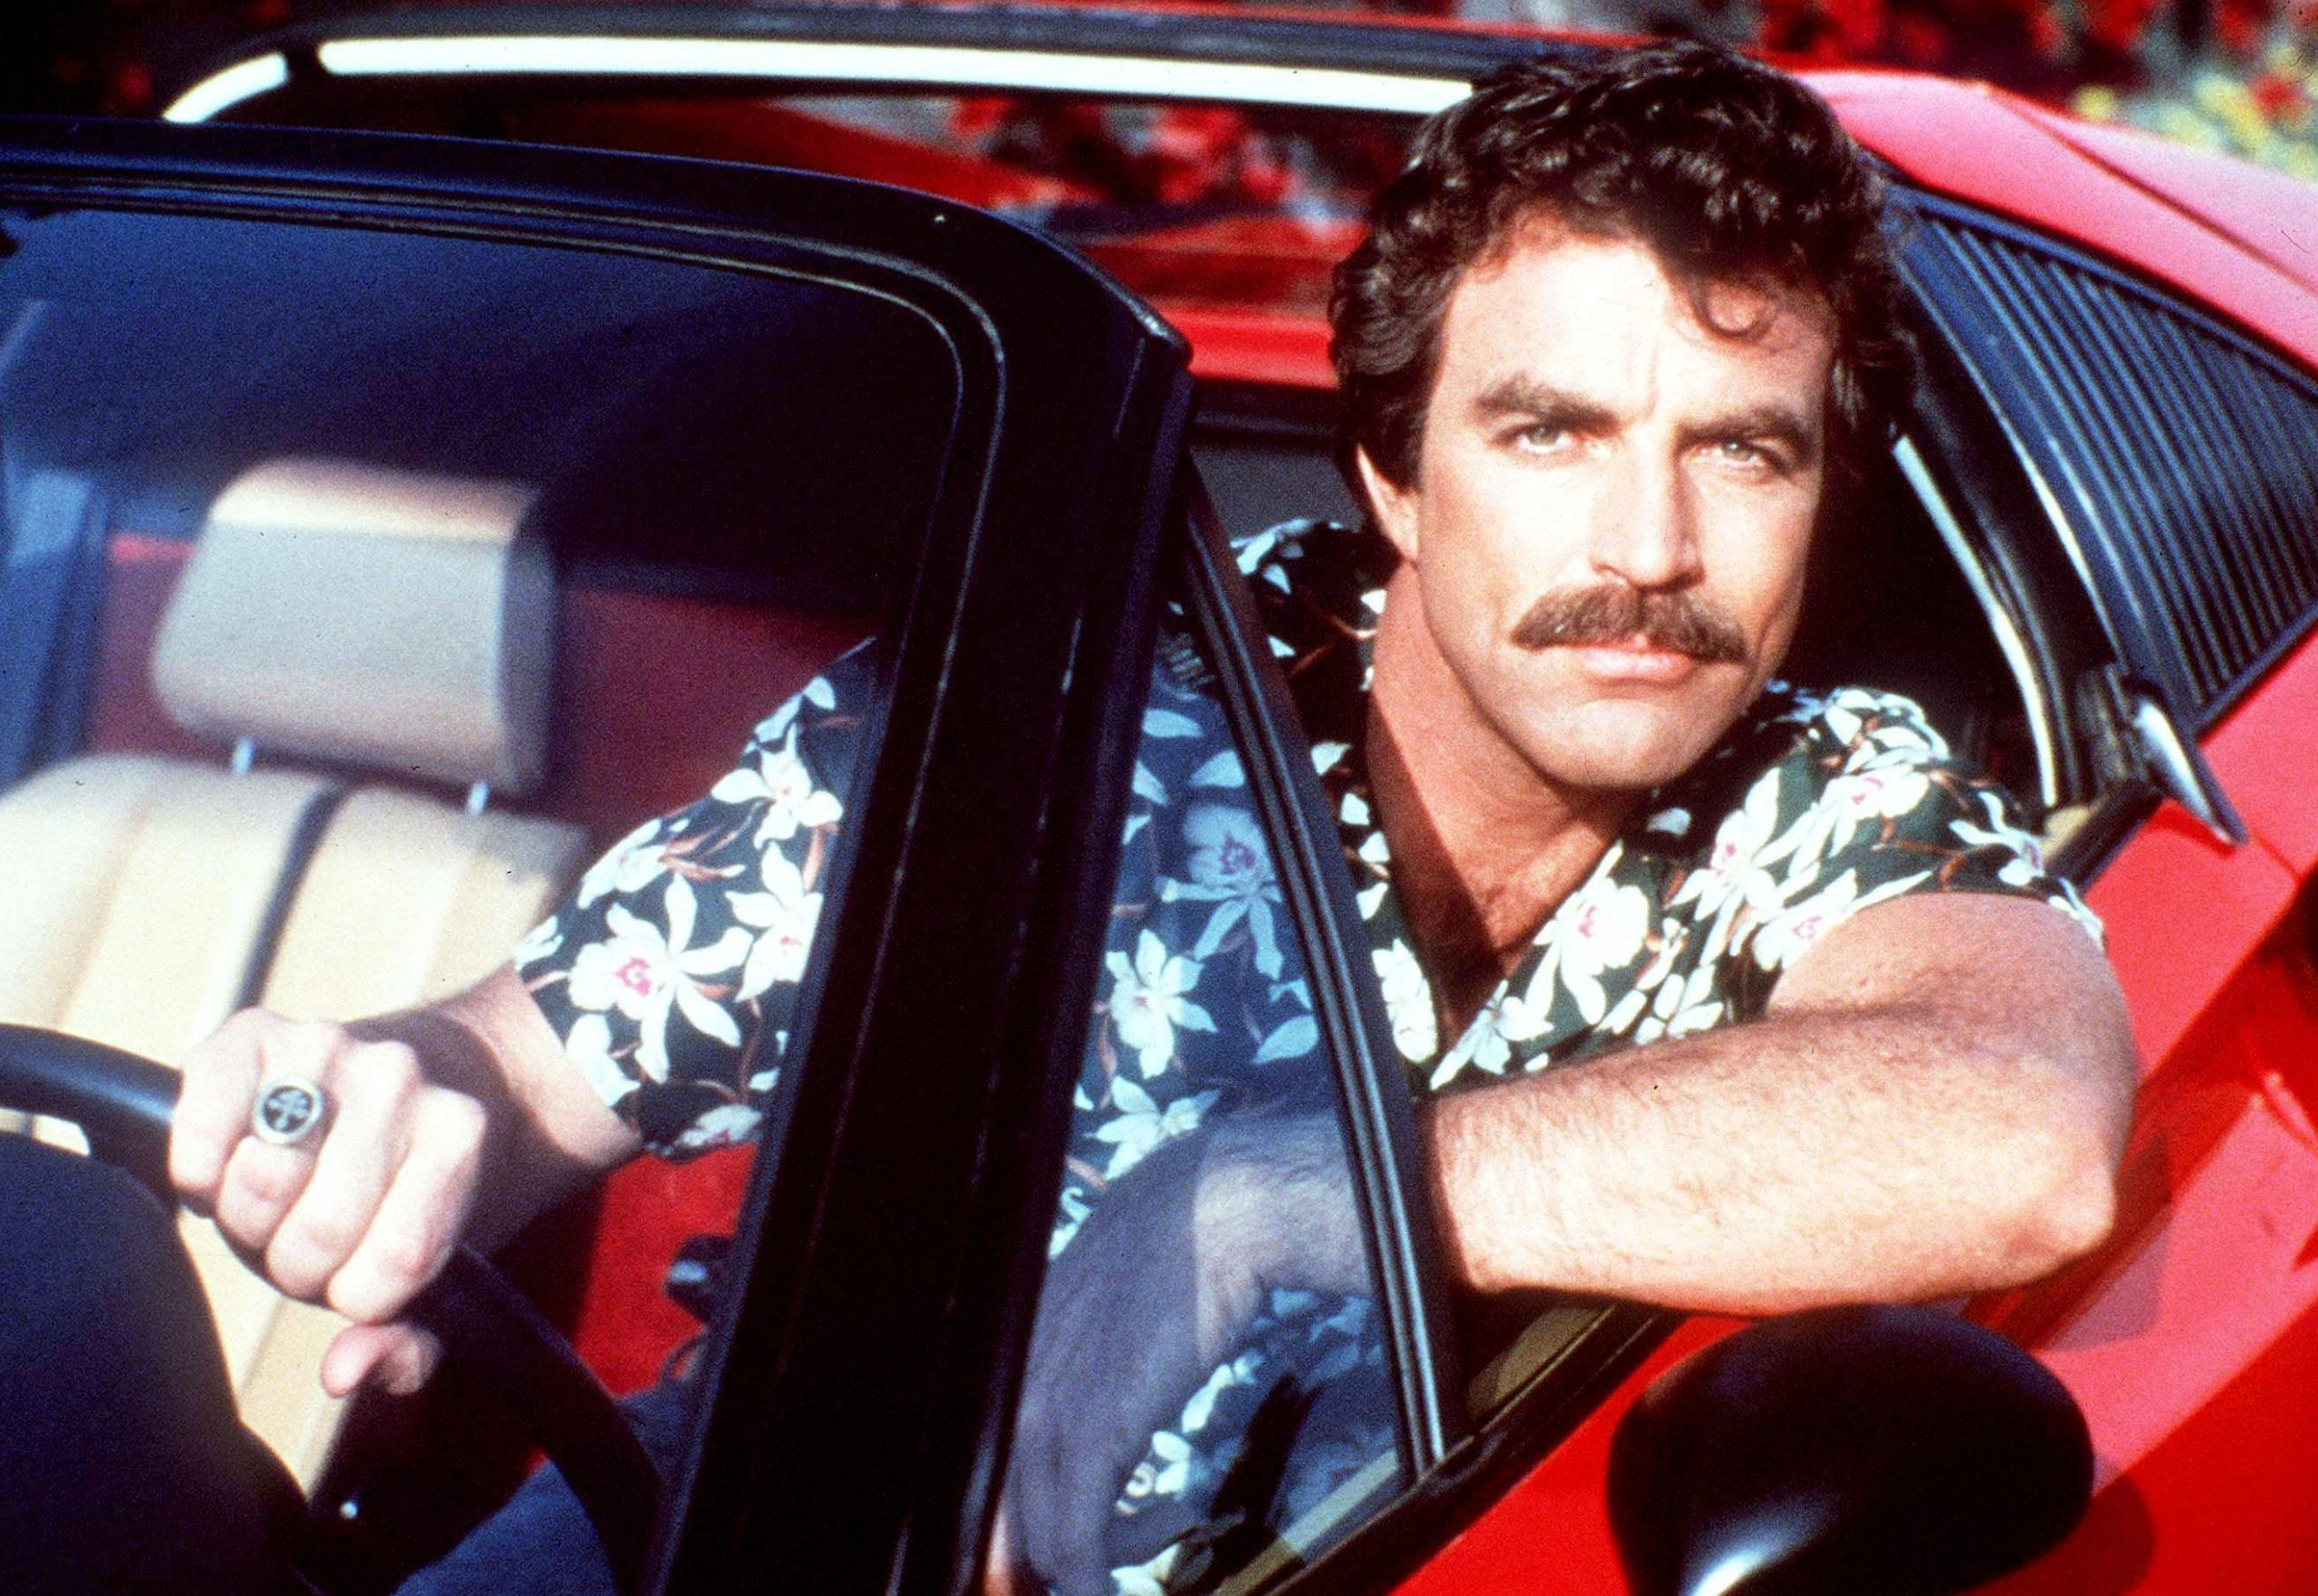 nintchdbpict0000006770991 e1484931282588 scaled 25 Things You Didn't Know About Magnum, P.I.